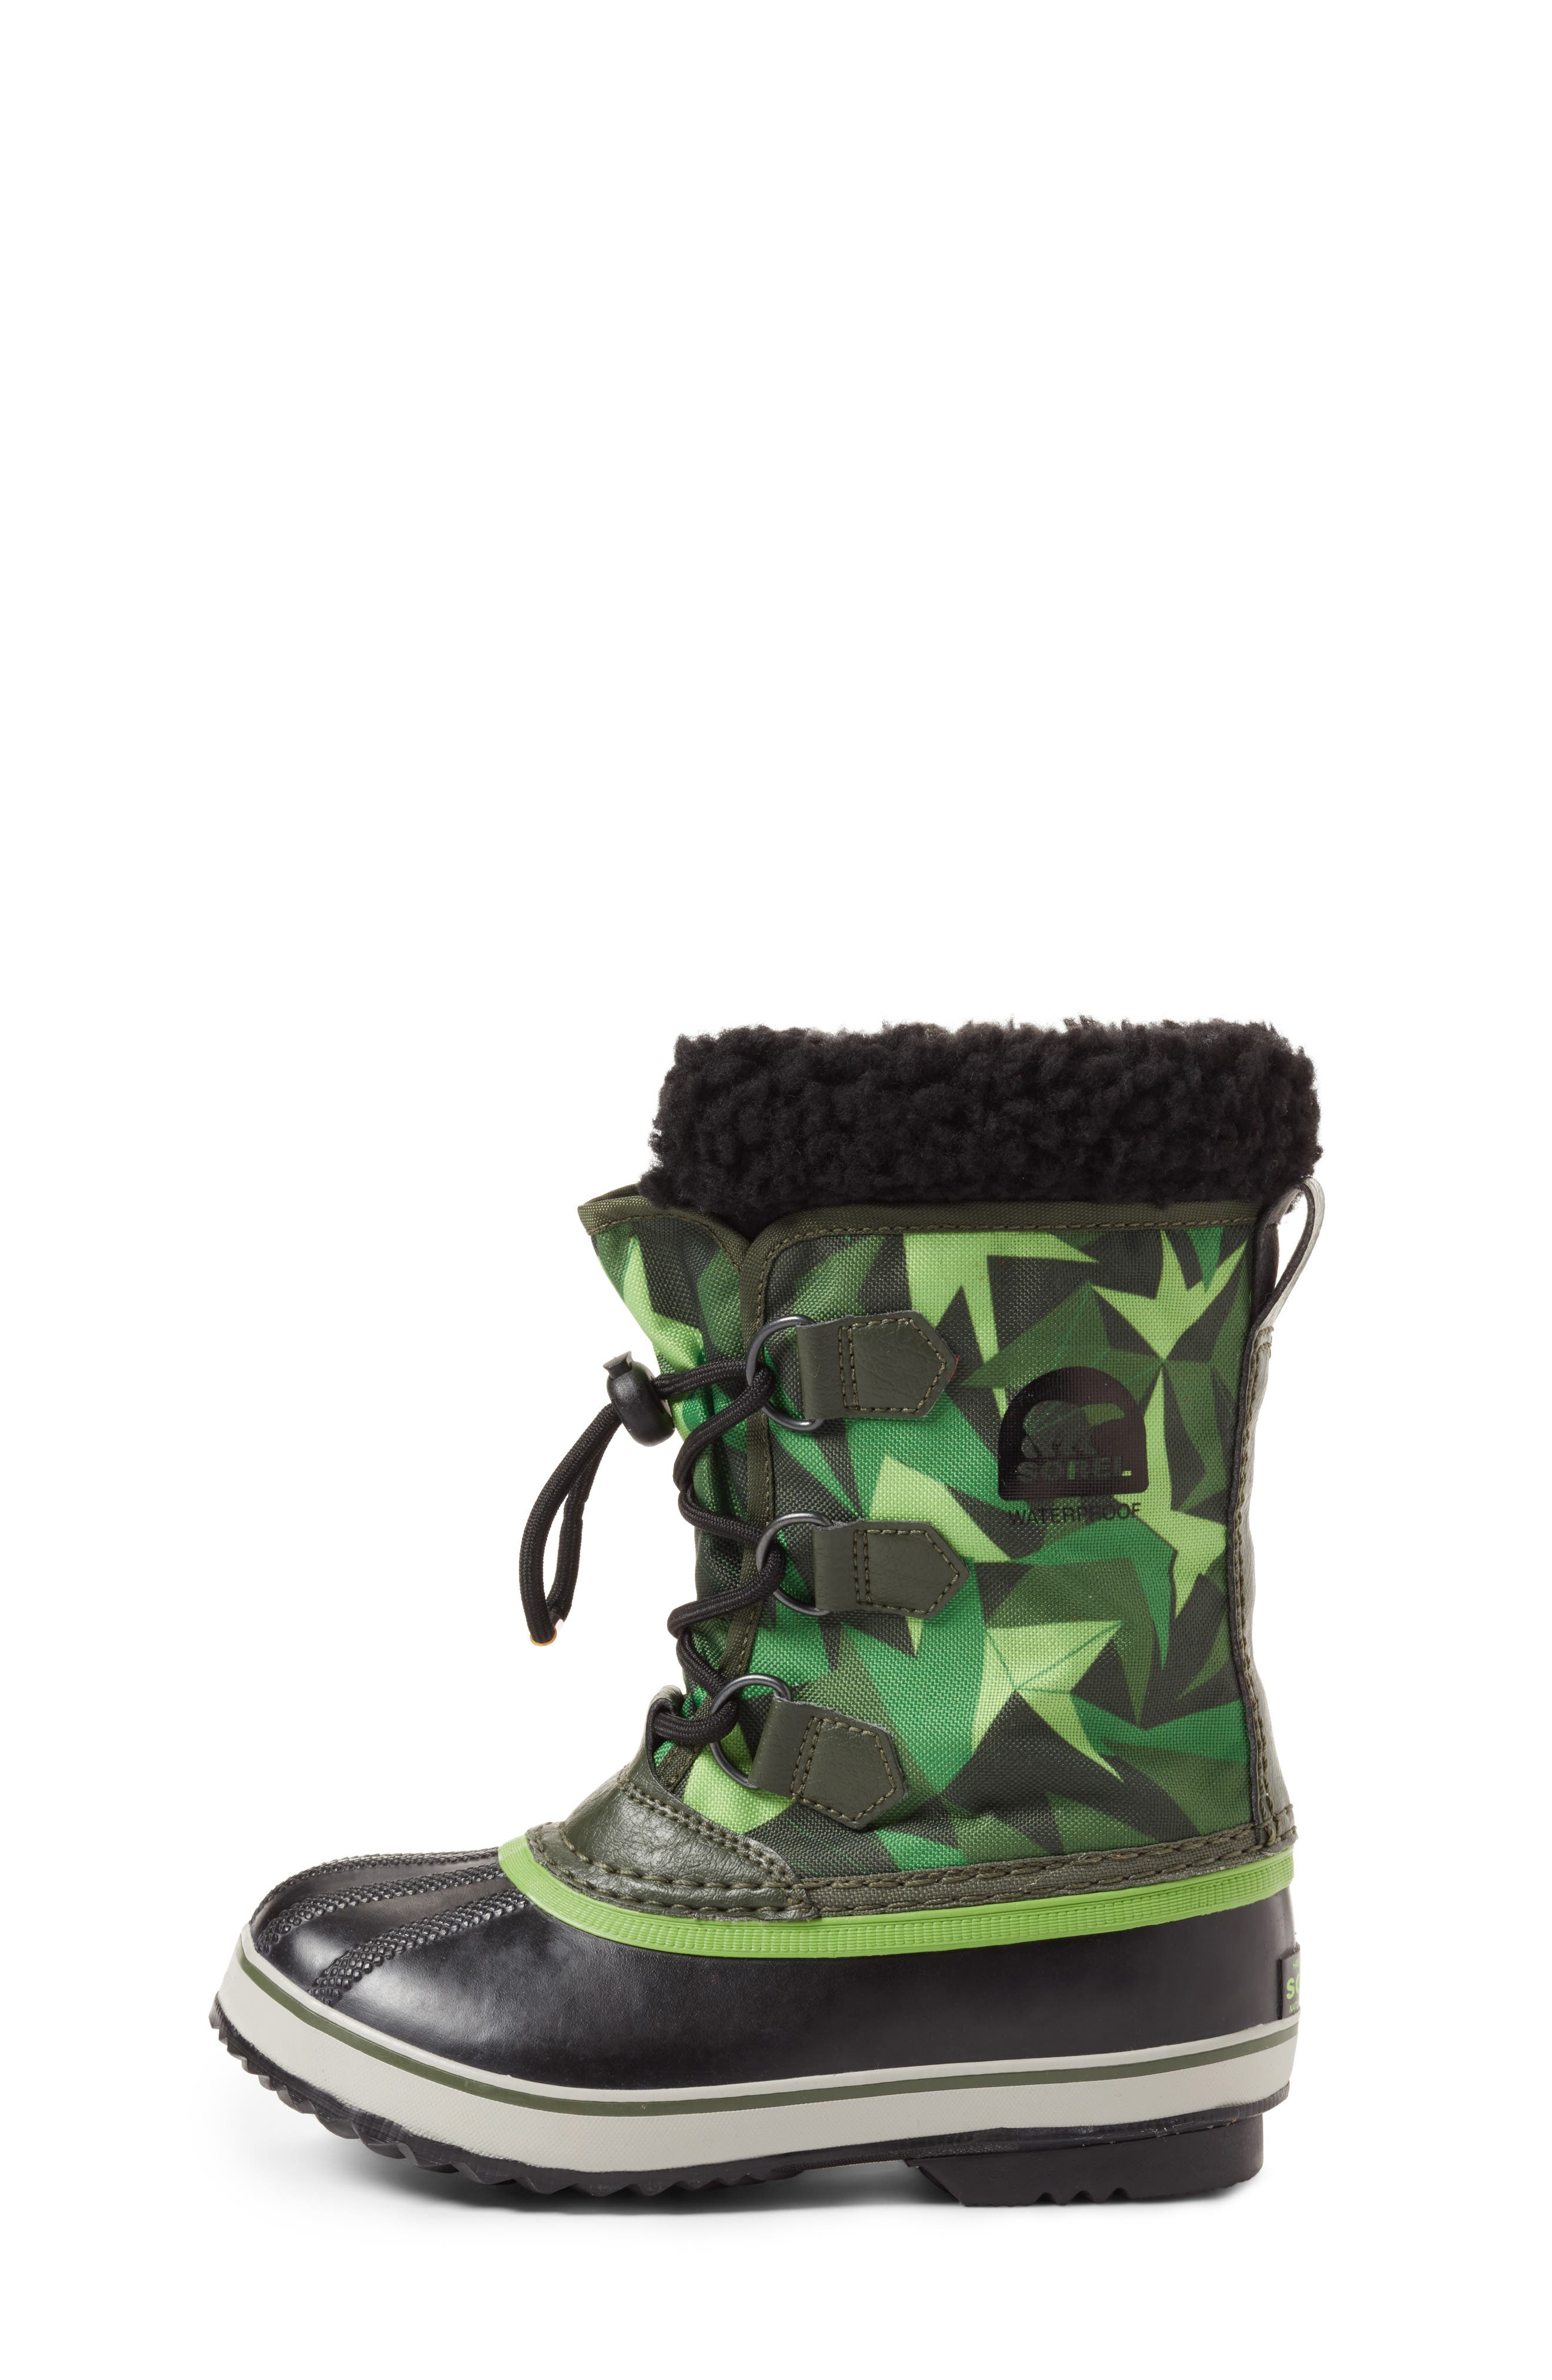 Yoot Pac Waterproof Insulated Snow Boot,                             Alternate thumbnail 3, color,